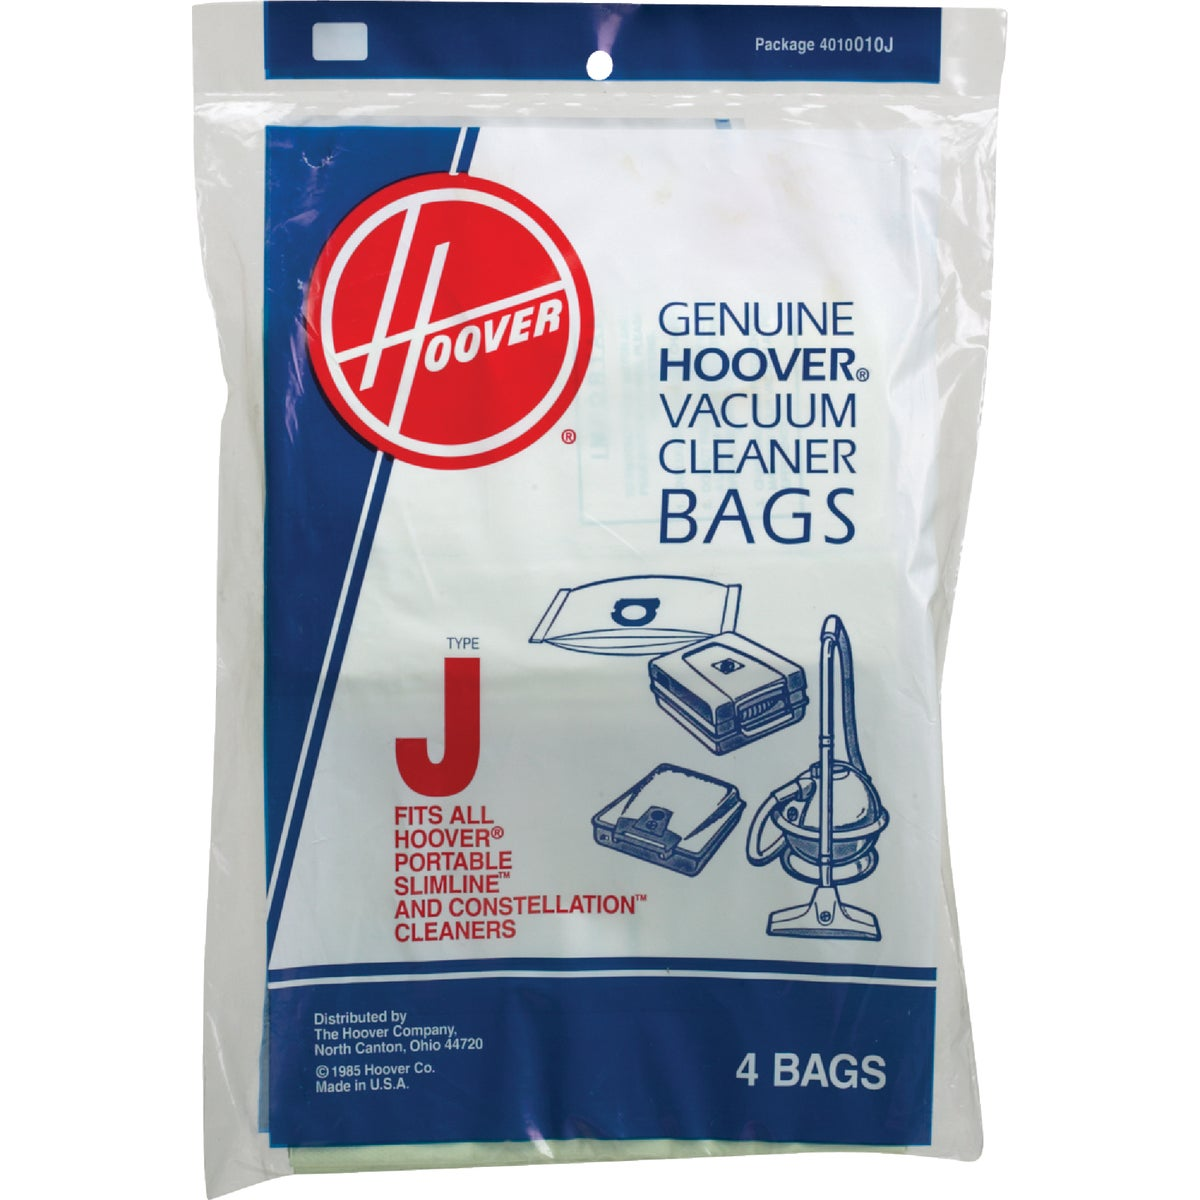 TYPE J VAC CLEANER BAG